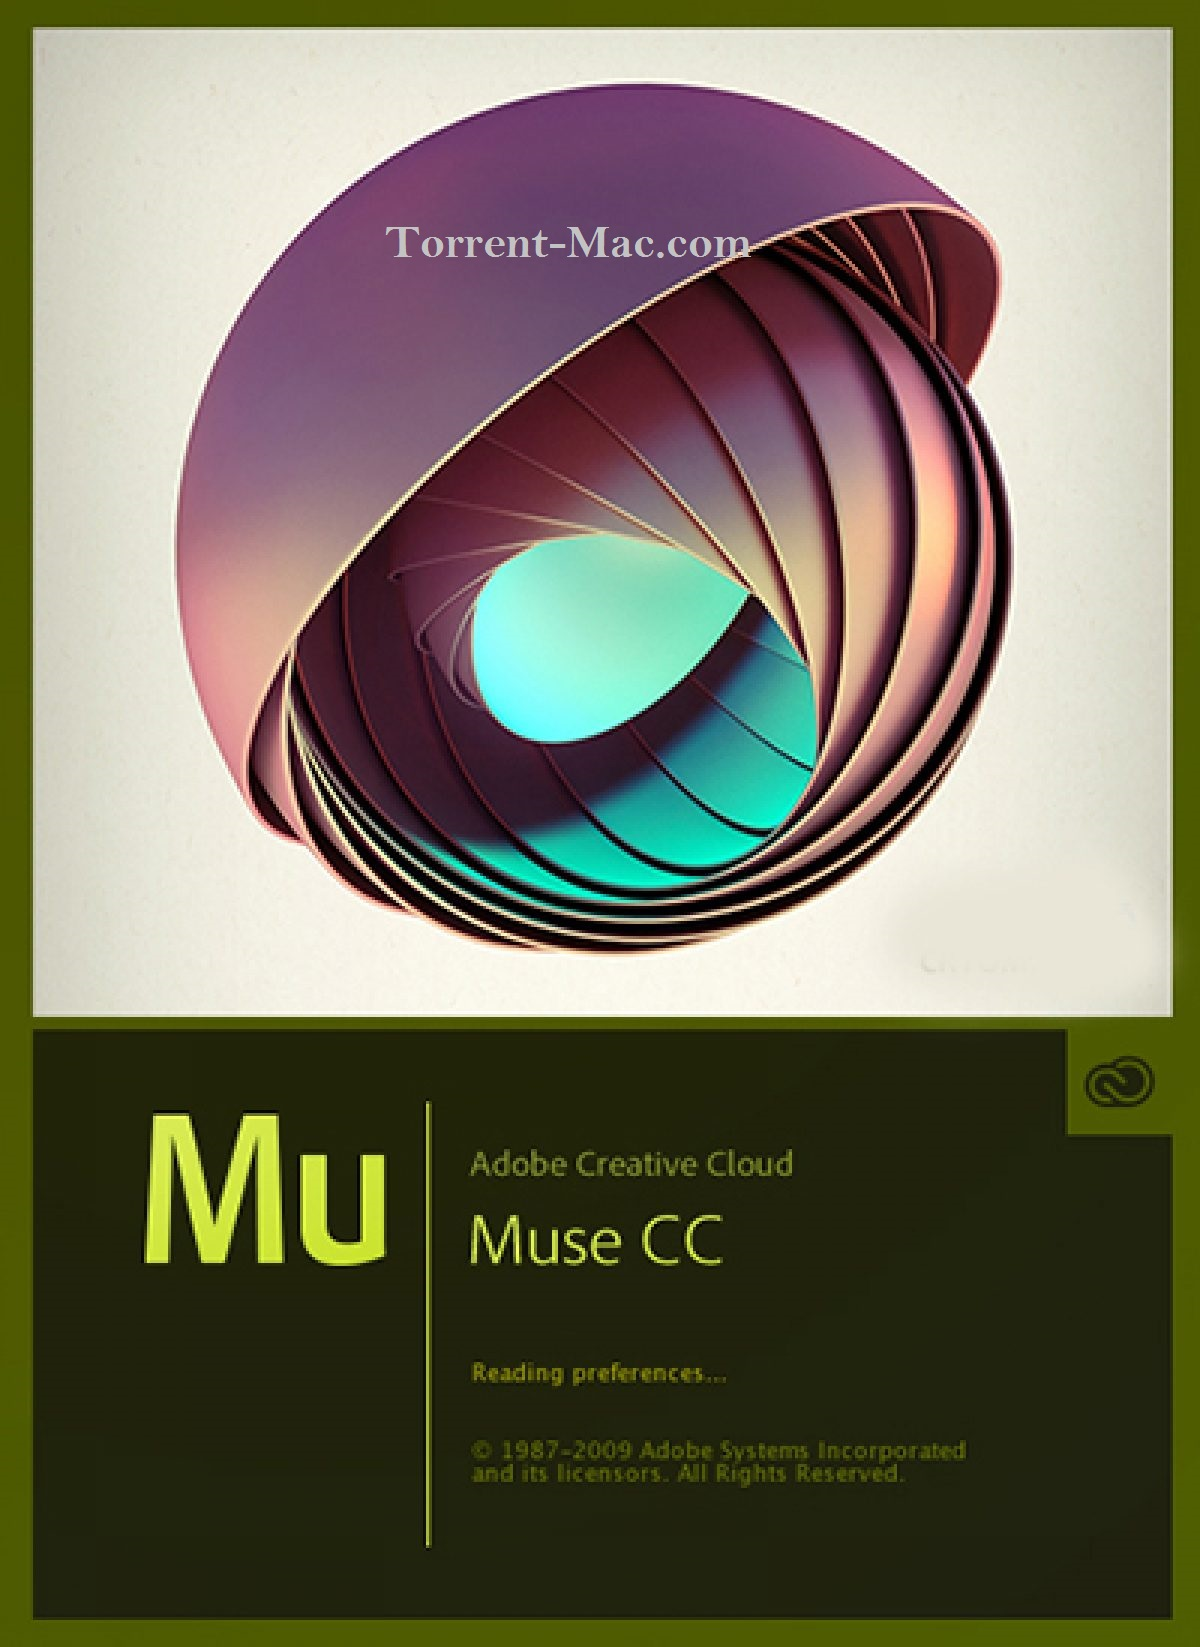 Adobe Muse CC 2020 Crack for Mac OS Torrent Free Download